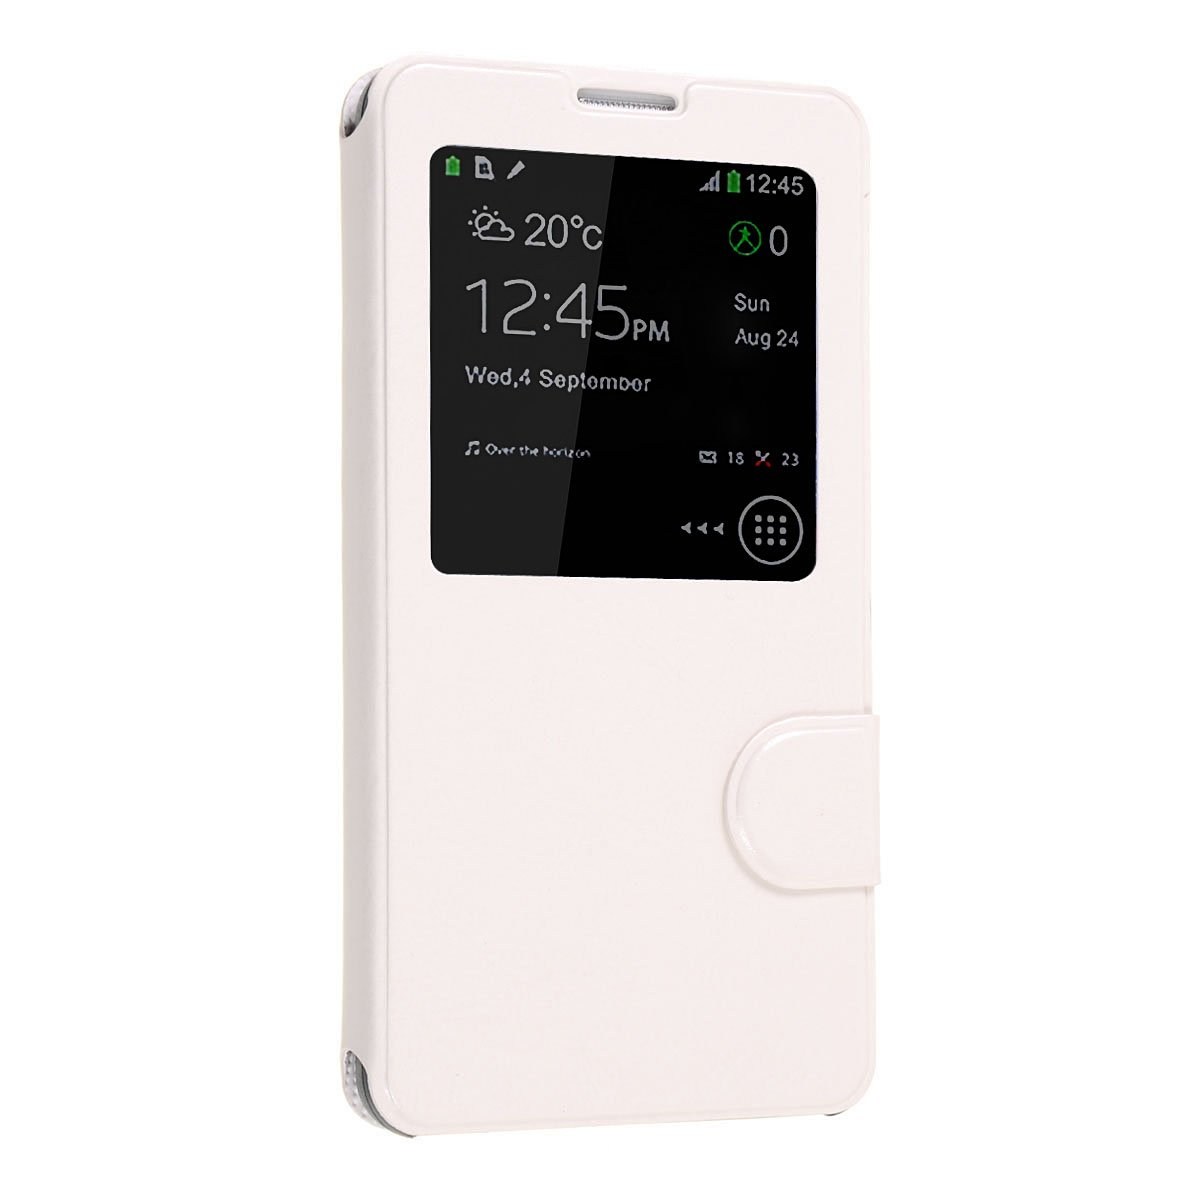 Okeler Hot White S-View Flip Cover Leather Case